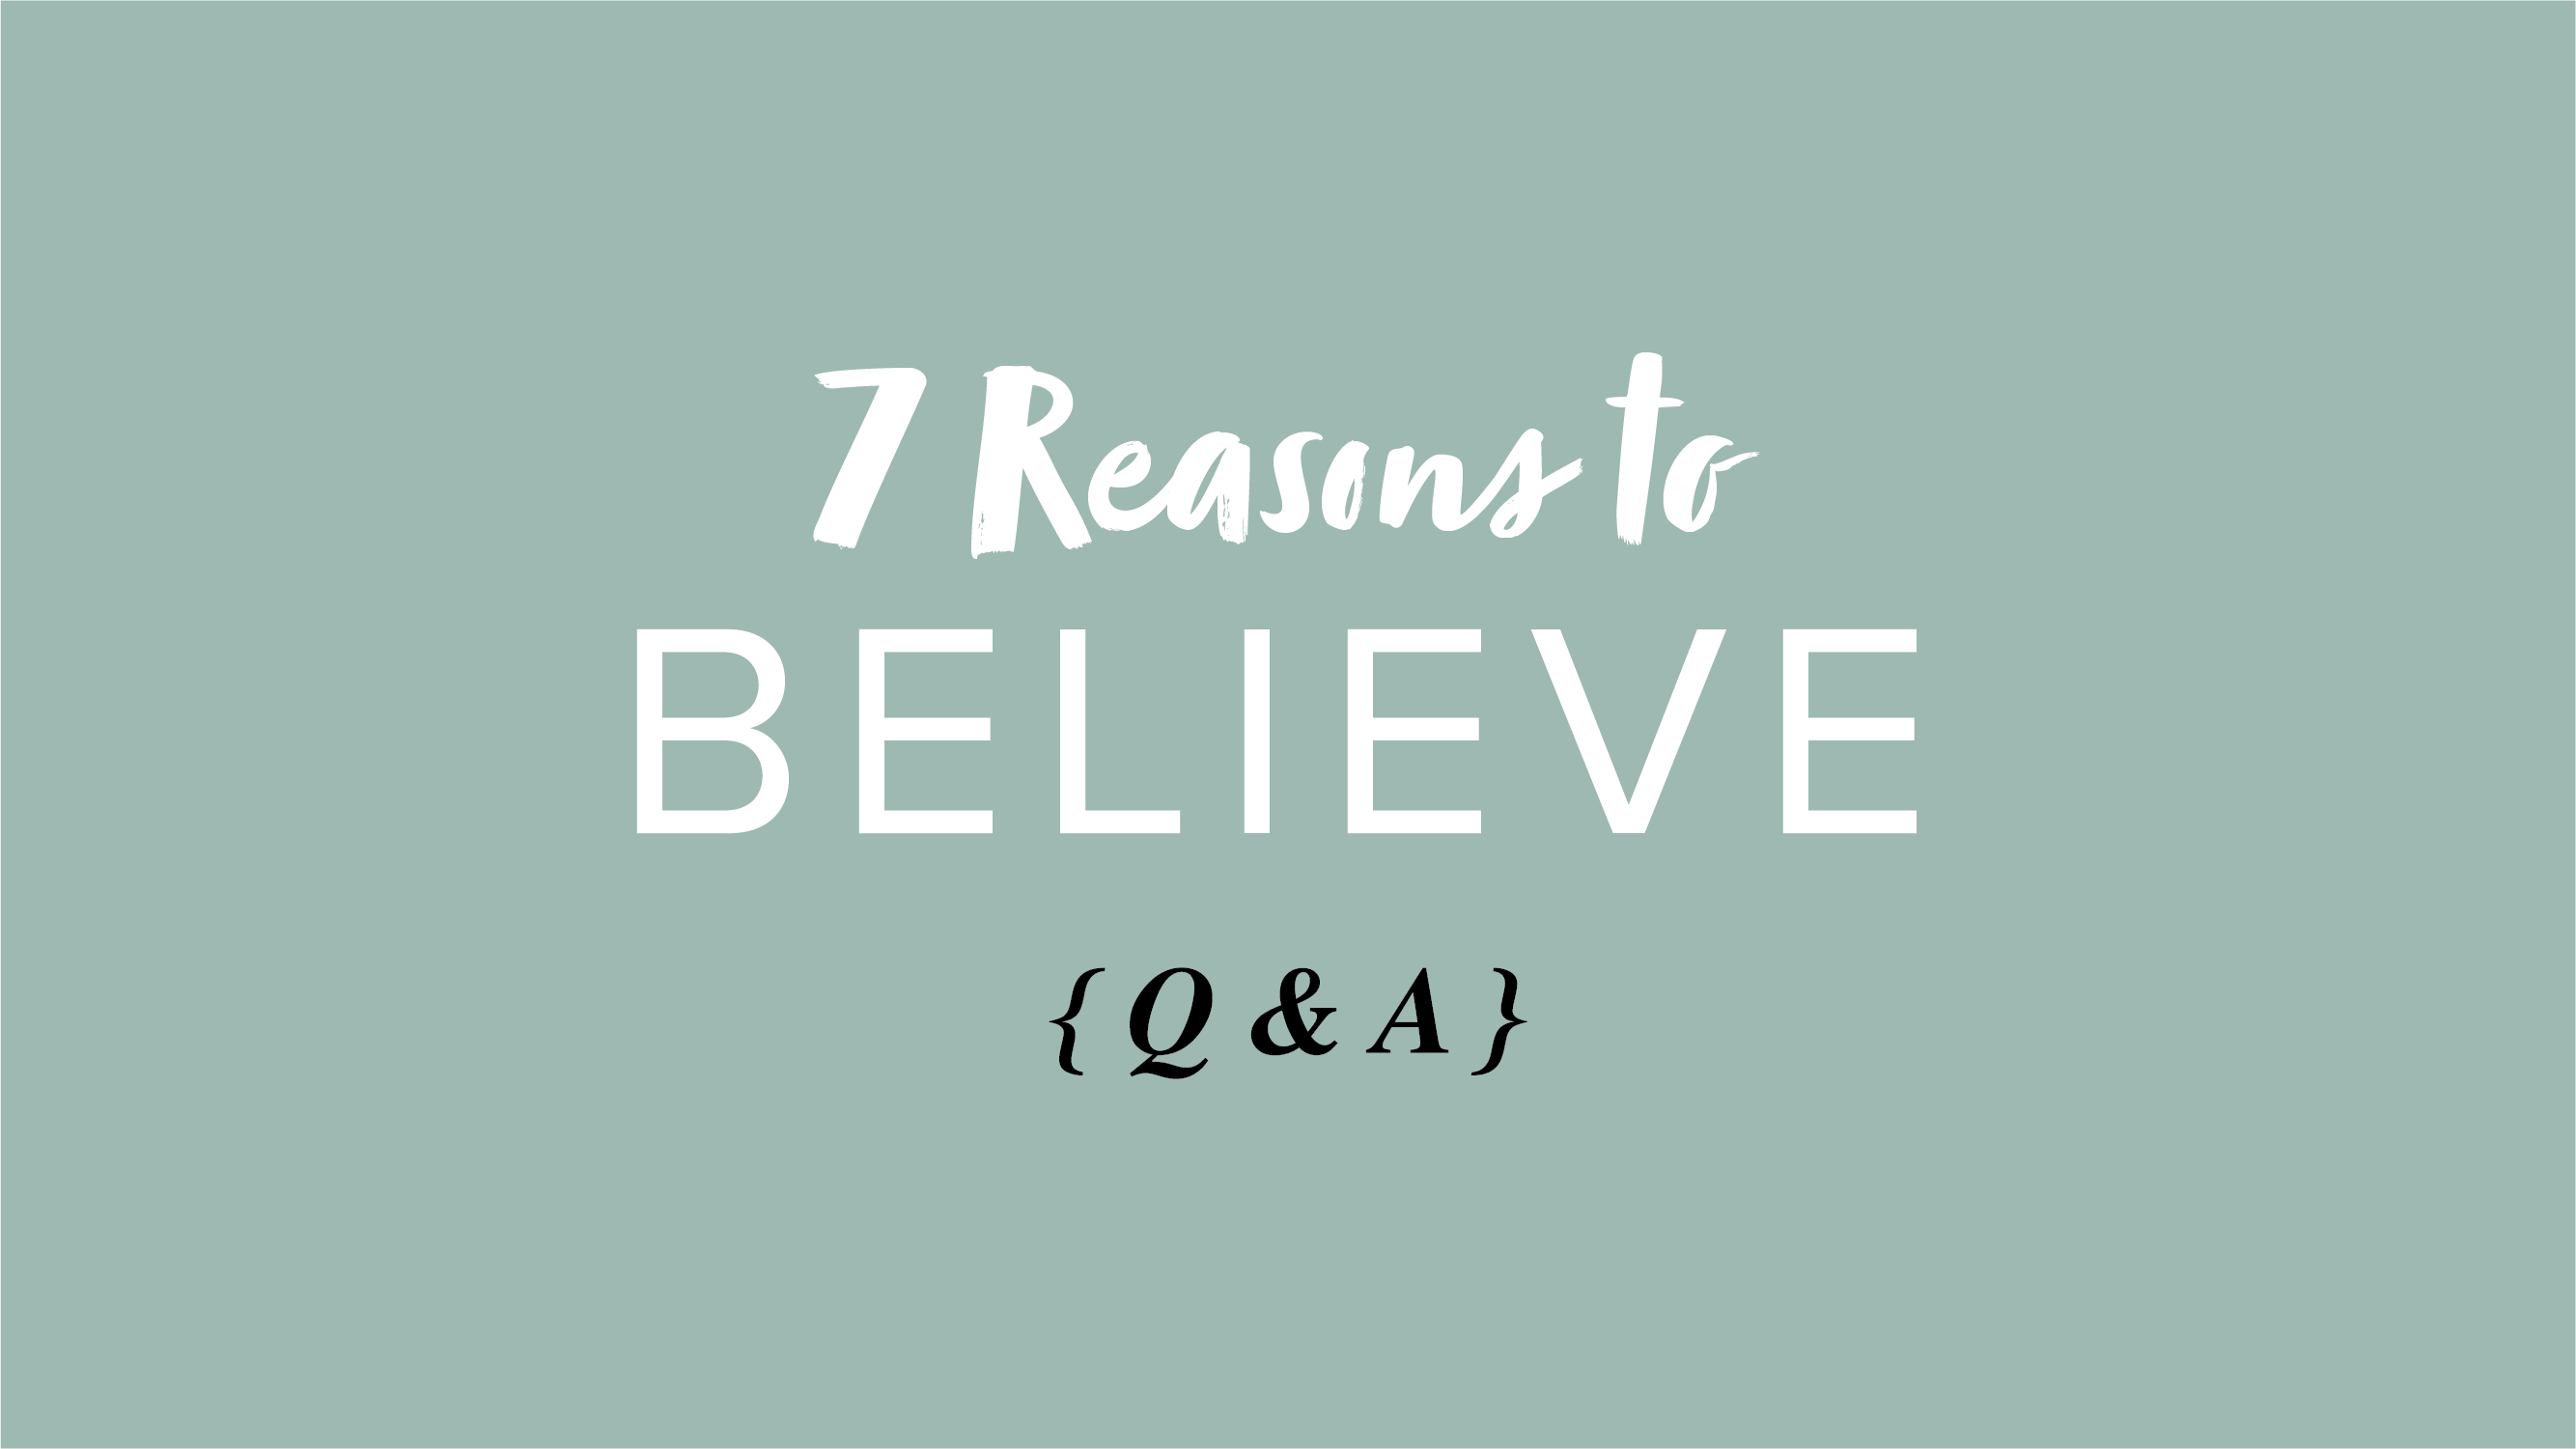 7 Reasons to Believe – Q&A